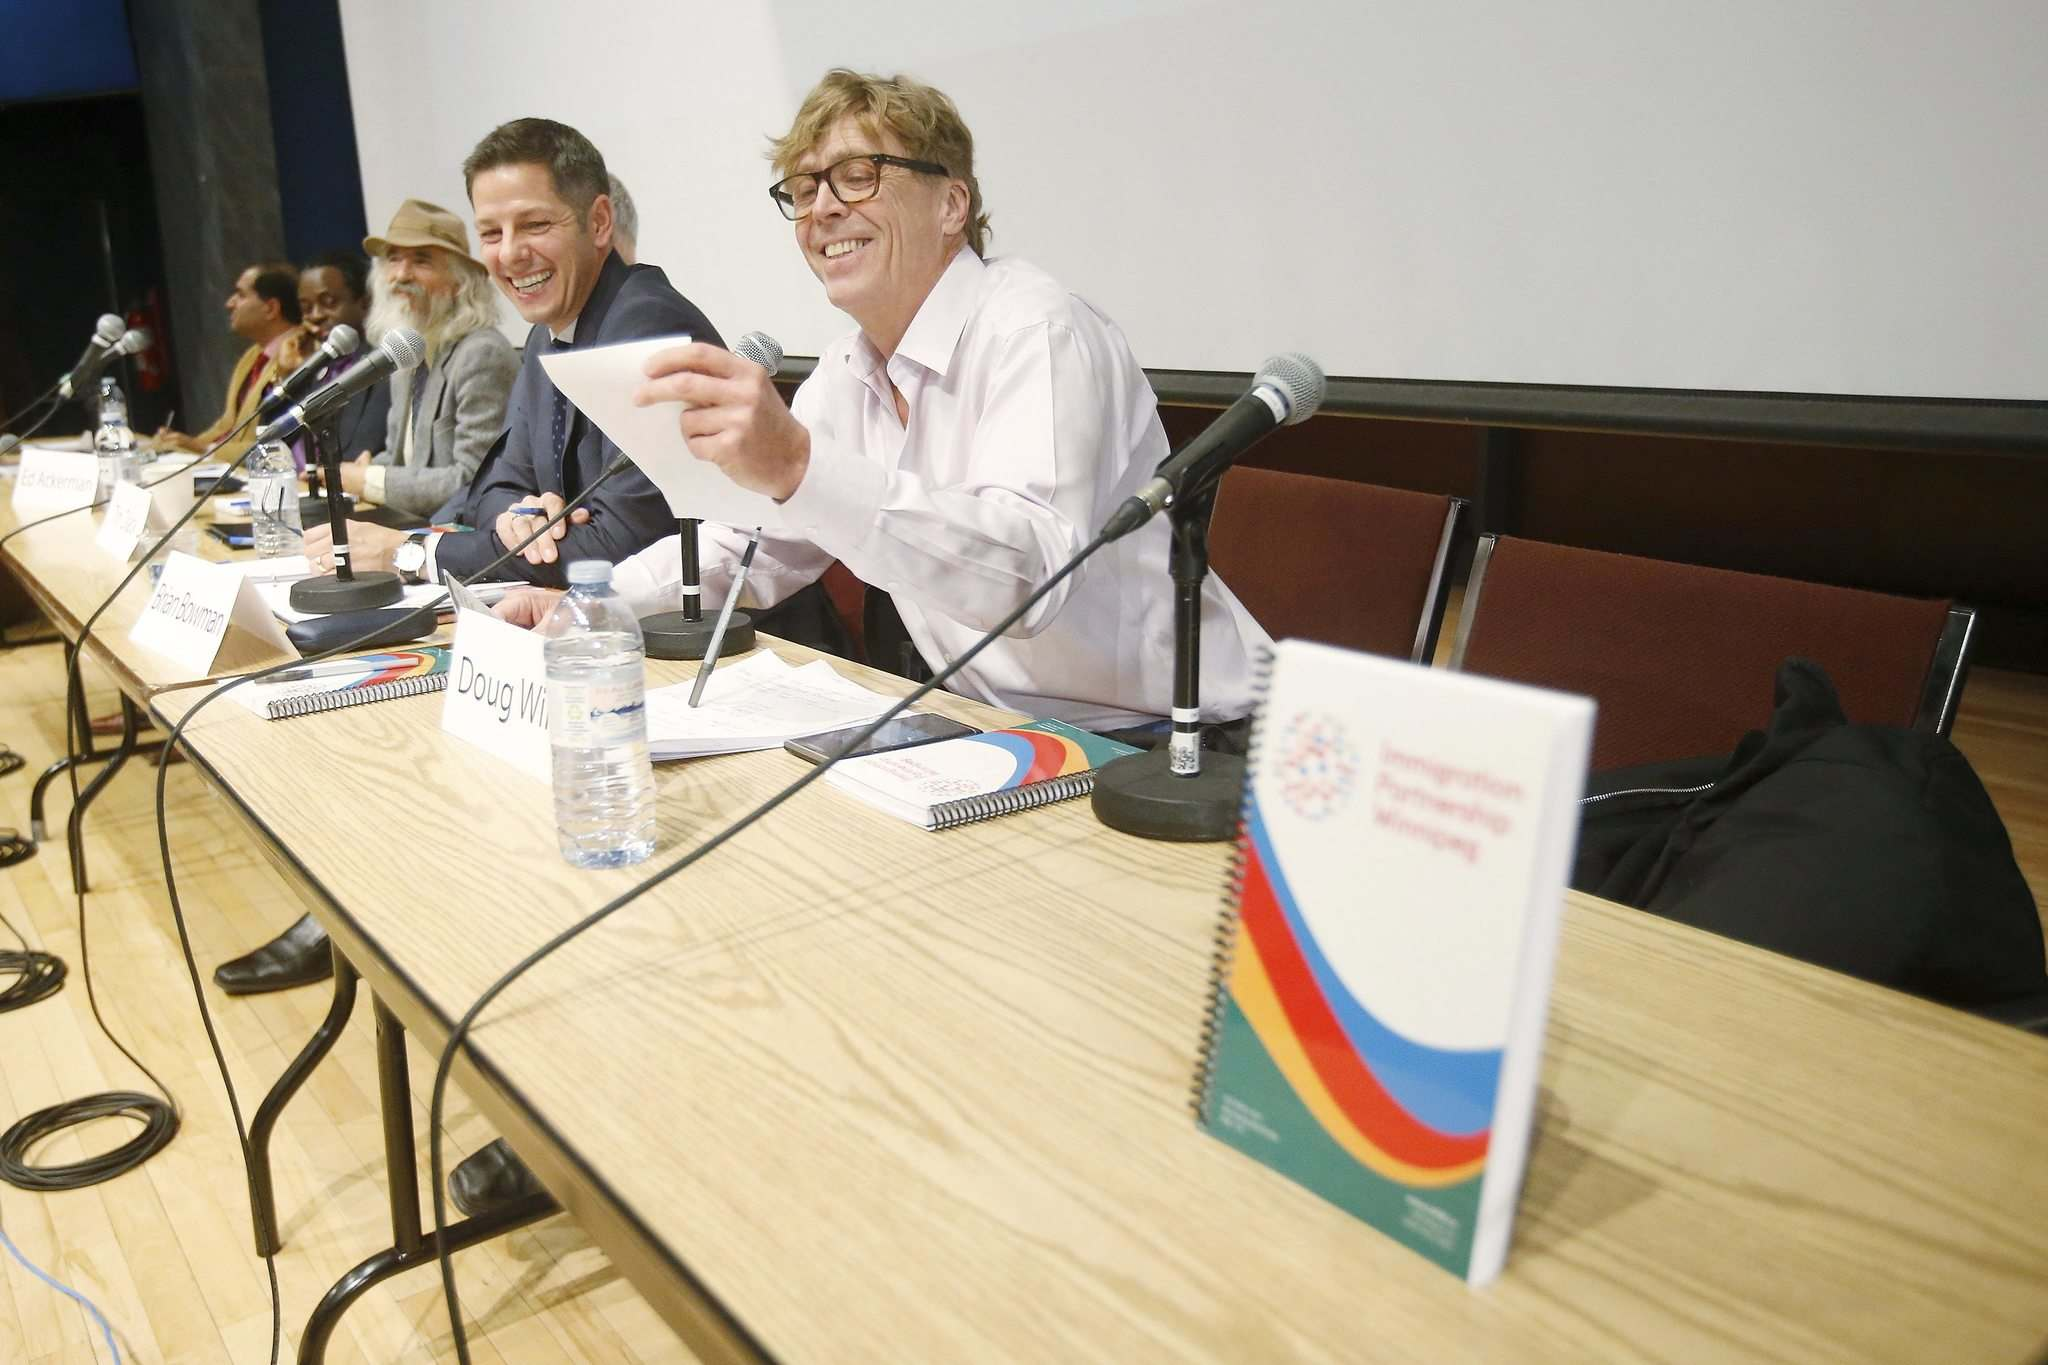 JOHN WOODS / WINNIPEG FREE PRESS</p><p>Mayoral candidate Doug Wilson (right) speaks at an election forum, focusing on poverty in the city, at the University of Winnipeg Wednesday.</p>